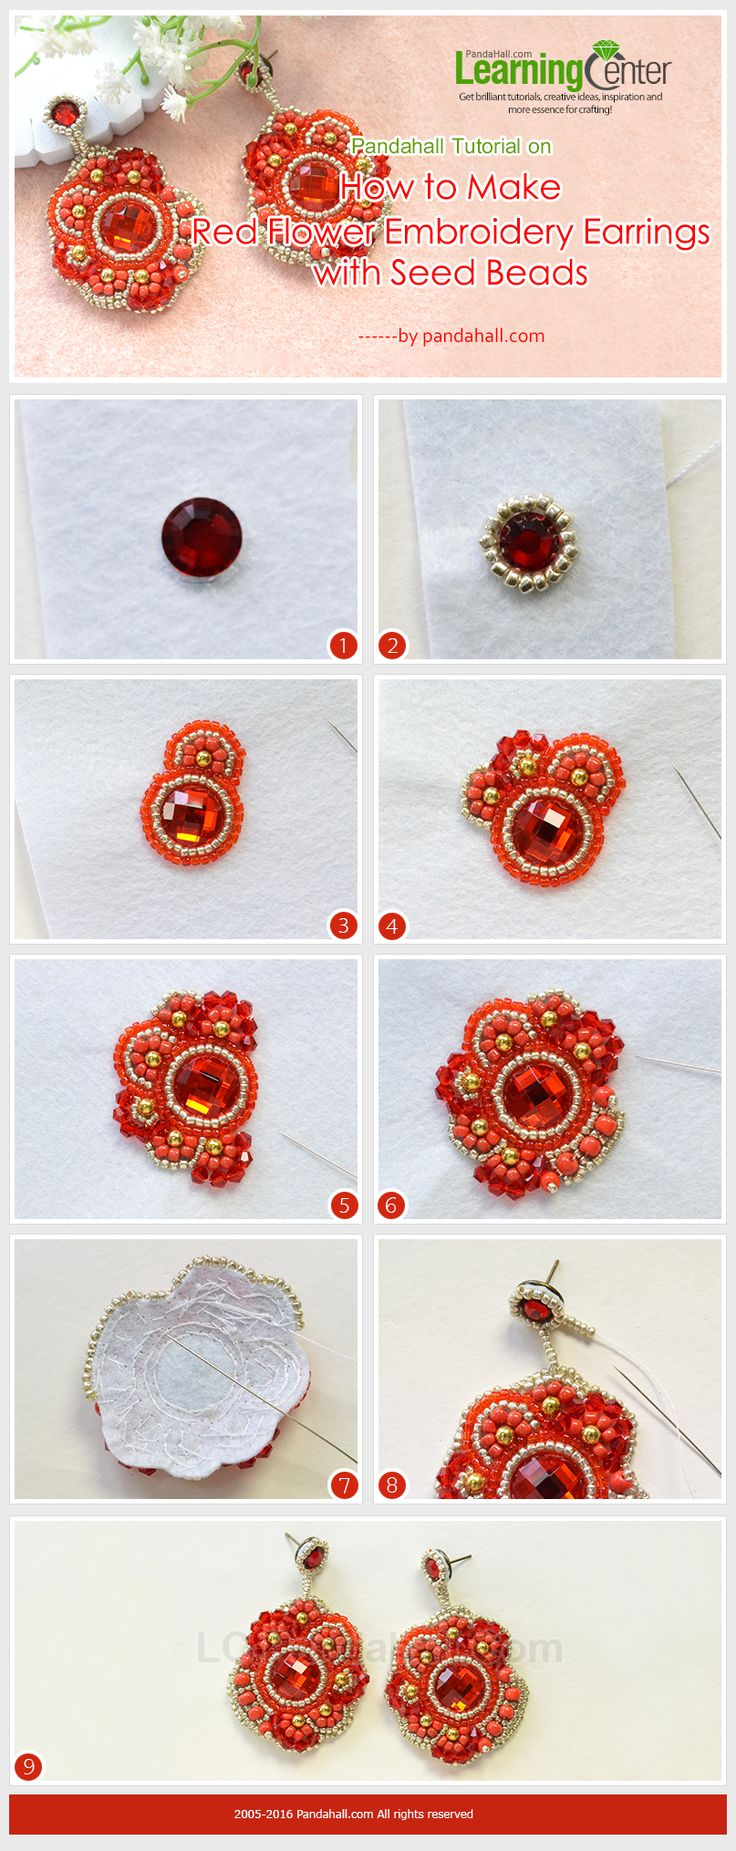 Best bead embroidery tutorials images on pinterest